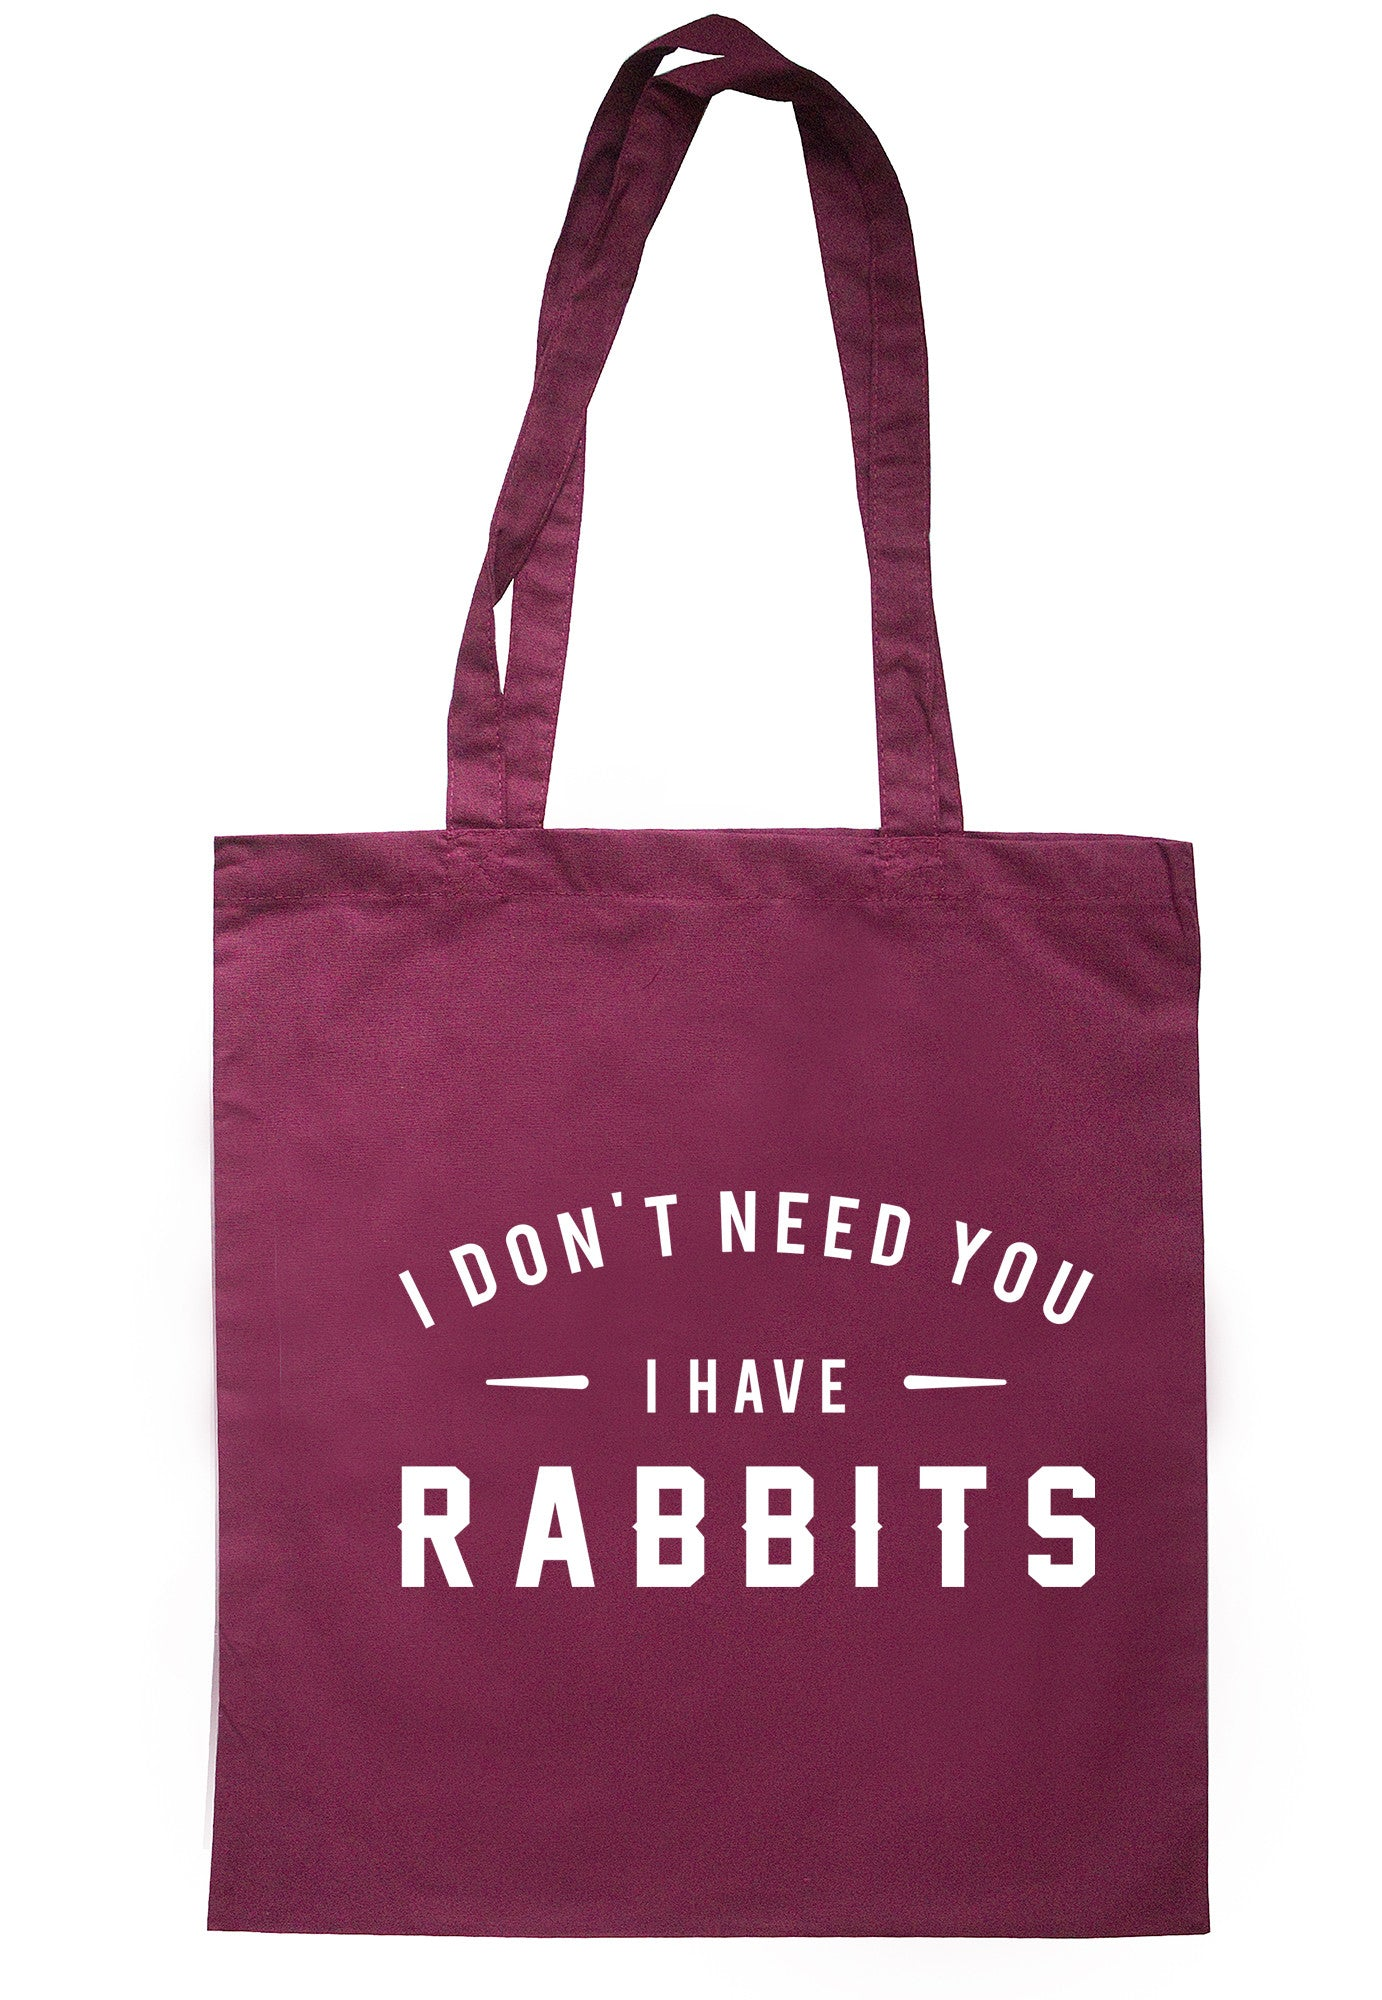 I Don't Need You I Have Rabbits Tote Bag TB0604 - Illustrated Identity Ltd.